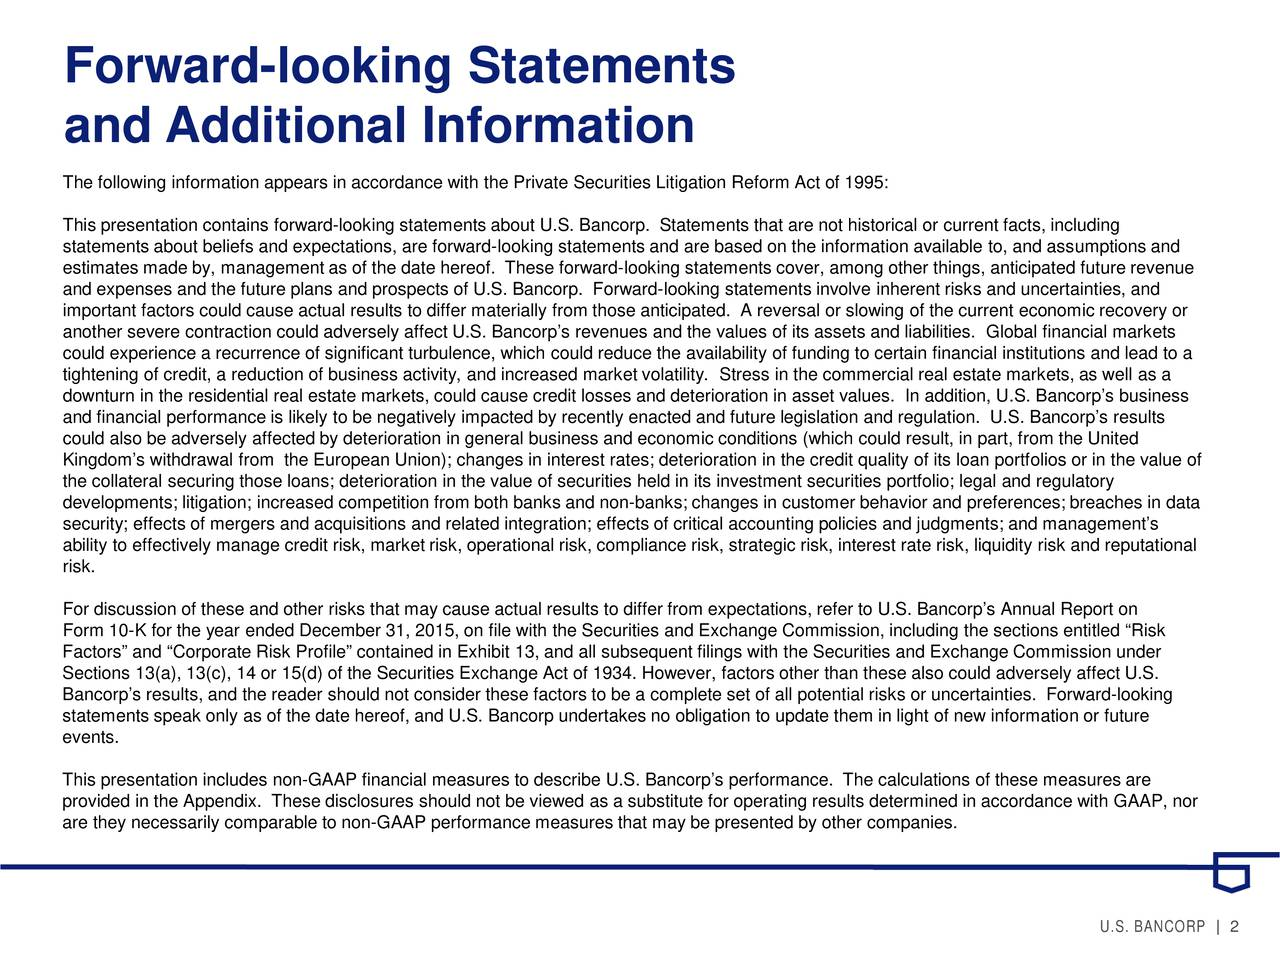 and Additional Information The following information appears in accordance with the Private Securities Litigation Reform Act of 1995: This presentation contains forward-looking statements about U.S. Bancorp. Statements that are not historical or current facts, including statements about beliefs and expectations, are forward-looking statements and are based on the information available to, and assumptions and estimates made by, management as of the date hereof. These forward-looking statements cover, among other things, anticipated future revenue and expenses and the future plans and prospects of U.S. Bancorp. Forward-looking statements involve inherent risks and uncertainties, and important factors could cause actual results to differ materially from those anticipated. A reversal or slowing of the currenteconomic recovery or another severe contraction could adversely affect U.S. Bancorps revenues and the values of its assets and liabilities. Globalfinancial markets could experience a recurrence of significant turbulence, which could reduce the availability of funding to certain financialinstitutions and lead to a tightening of credit, a reduction of business activity, and increased market volatility. Stress in the commercial real estate markets, as well as a downturn in the residential real estate markets, could cause credit losses and deterioration in asset values. In addition, U.S. Bancorps business and financial performance is likely to be negatively impacted by recently enacted and future legislation and regulation. U.S. Bancorps results could also be adversely affected by deterioration in general business and economic conditions (which could result, in part, from the United Kingdoms withdrawal from the European Union); changes in interest rates; deterioration in the credit quality of itsflios or in the value of the collateral securing those loans; deterioration in the value of securities held in its investment securities portfolio; legaland regulatory developme